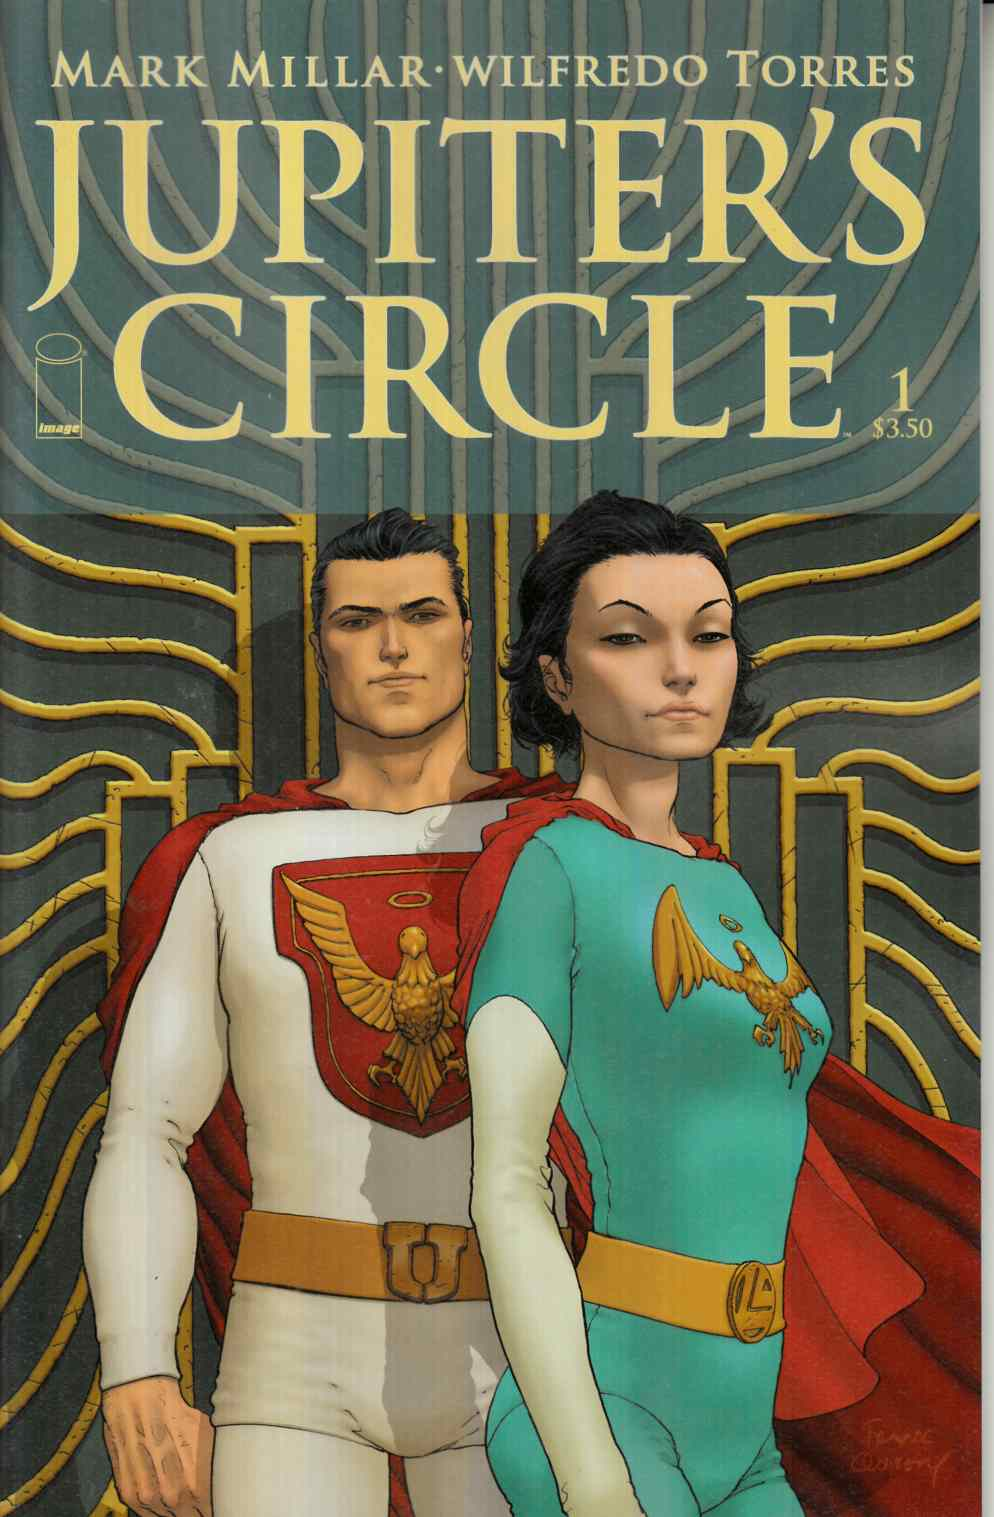 Jupiters Circle #1 Cover A- Quitely [Image Comic]